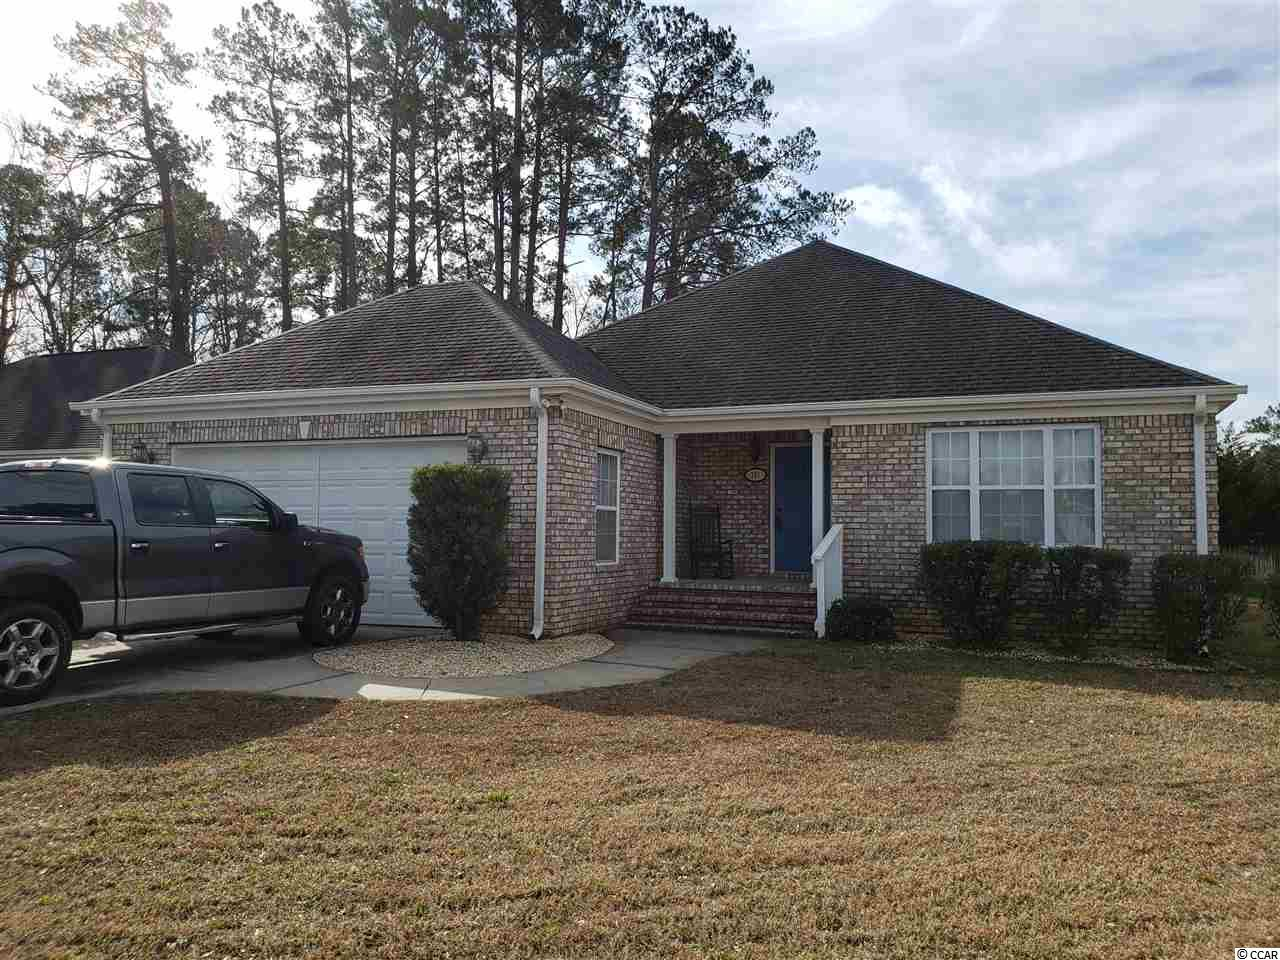 3 bedroom/2 bath home in the Parsons Gardens area of Georgetown. This well keep home has an open floor plan and a large garage. Is just minutes from the Historic District downtown, shopping and dining on the waterfront. Square footage is approximate and not guaranteed. Buyer is responsible for verification.